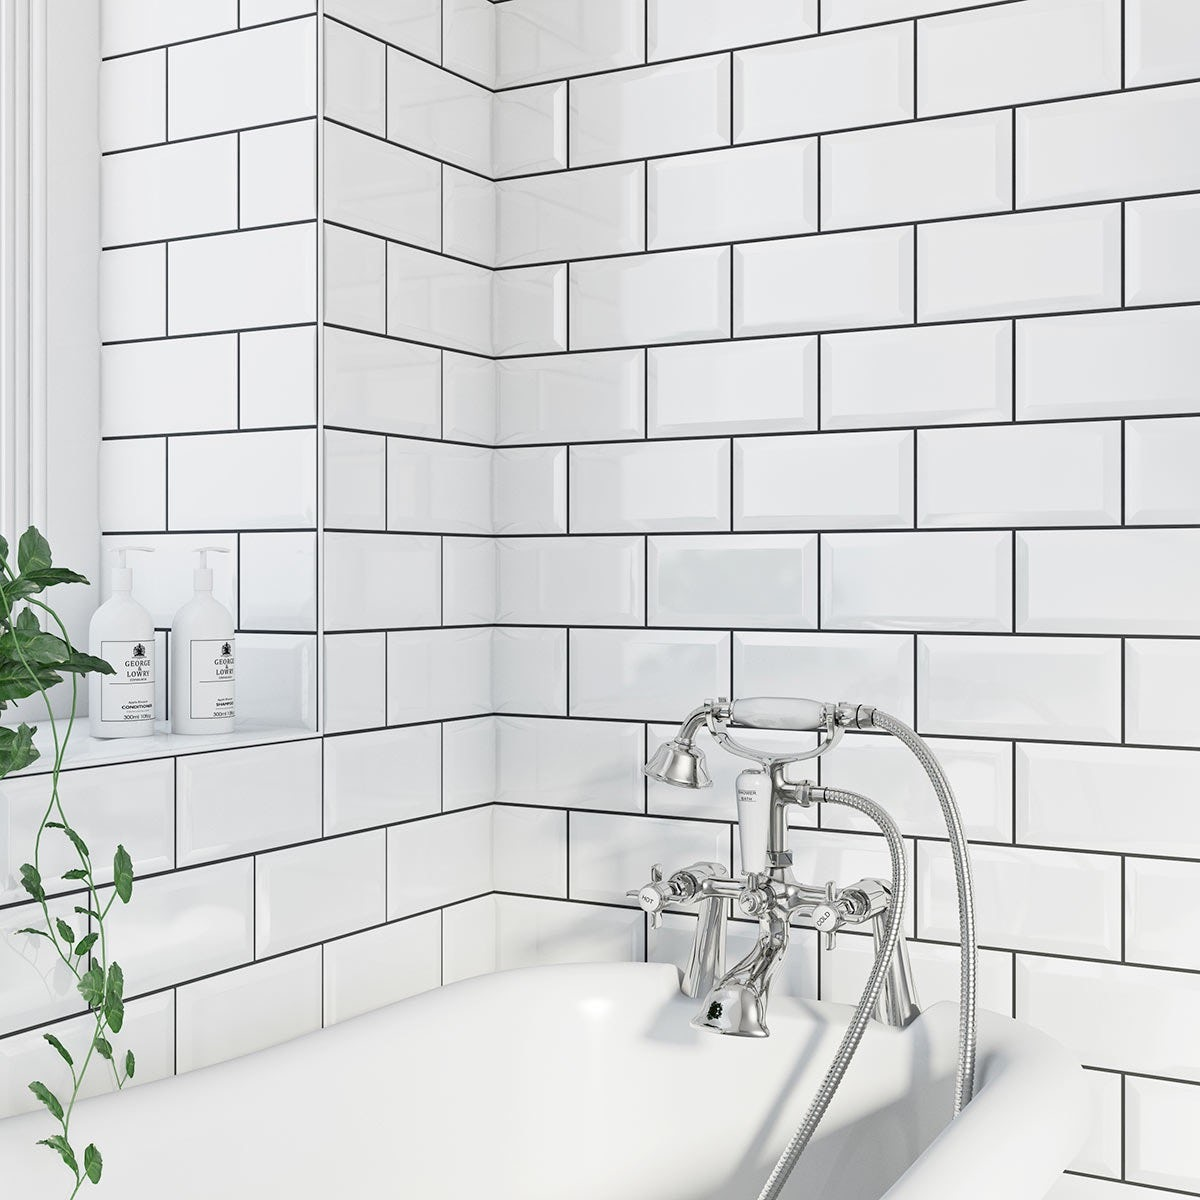 How to calculate grout for ceramic tiles